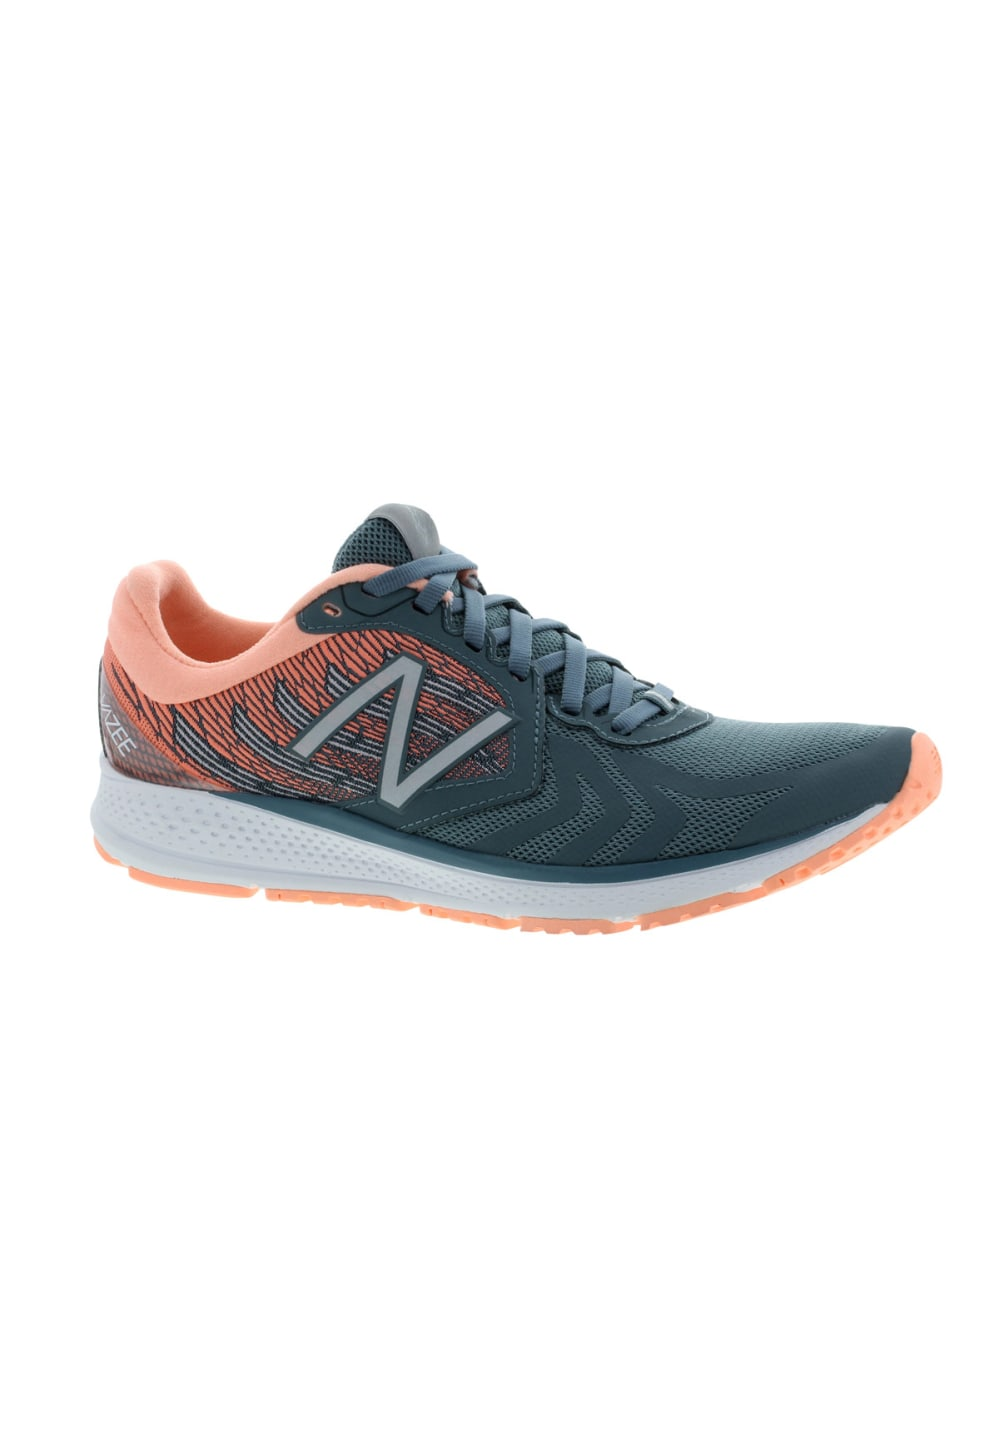 New Pour Femme Running Gris Vazee Balance Pace V2 Chaussures PkiXOZu